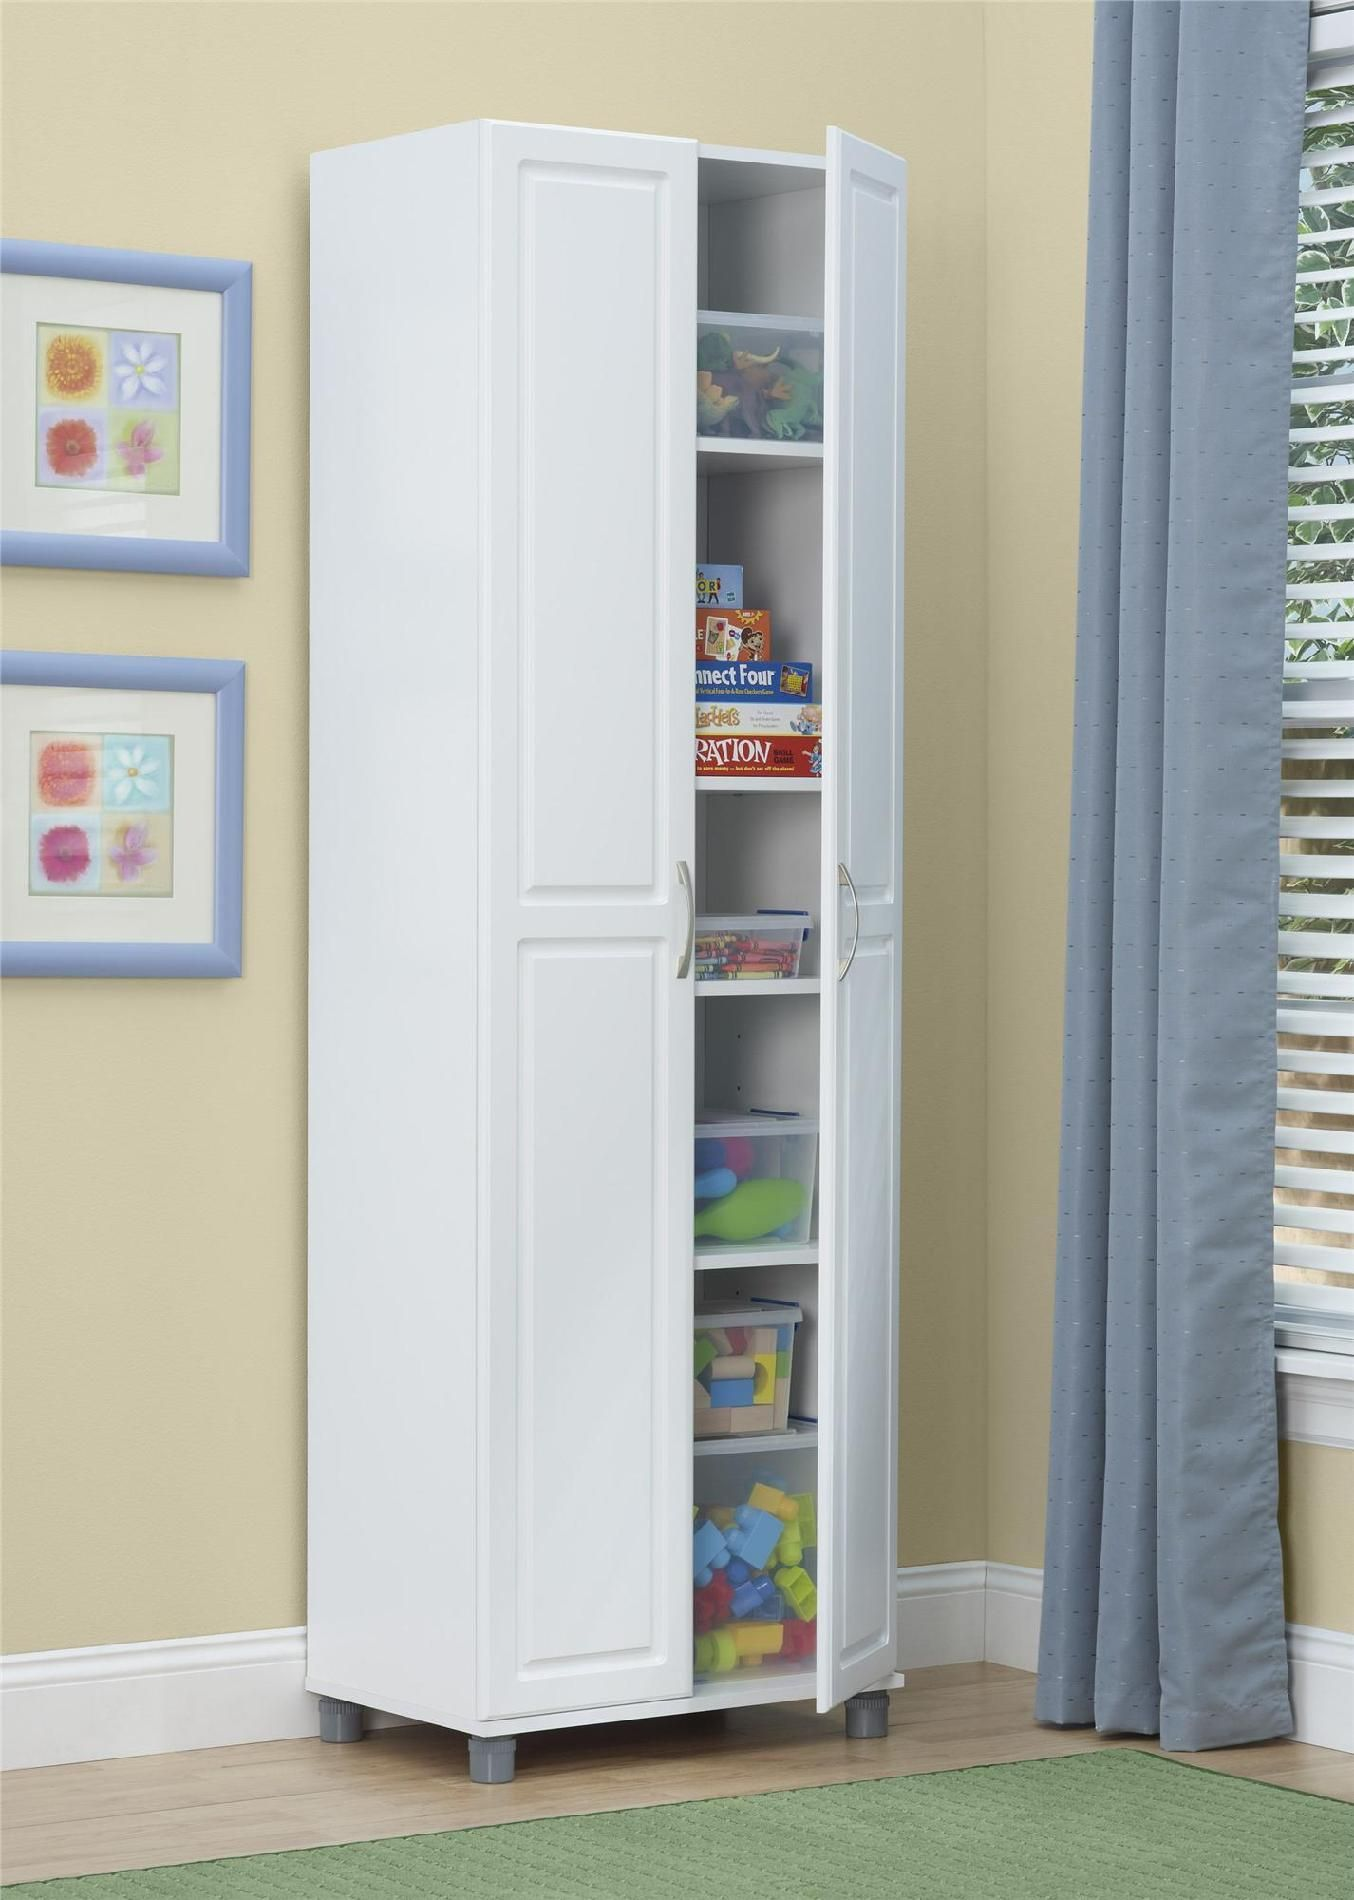 20 Awesome Ideas For Utility Closet